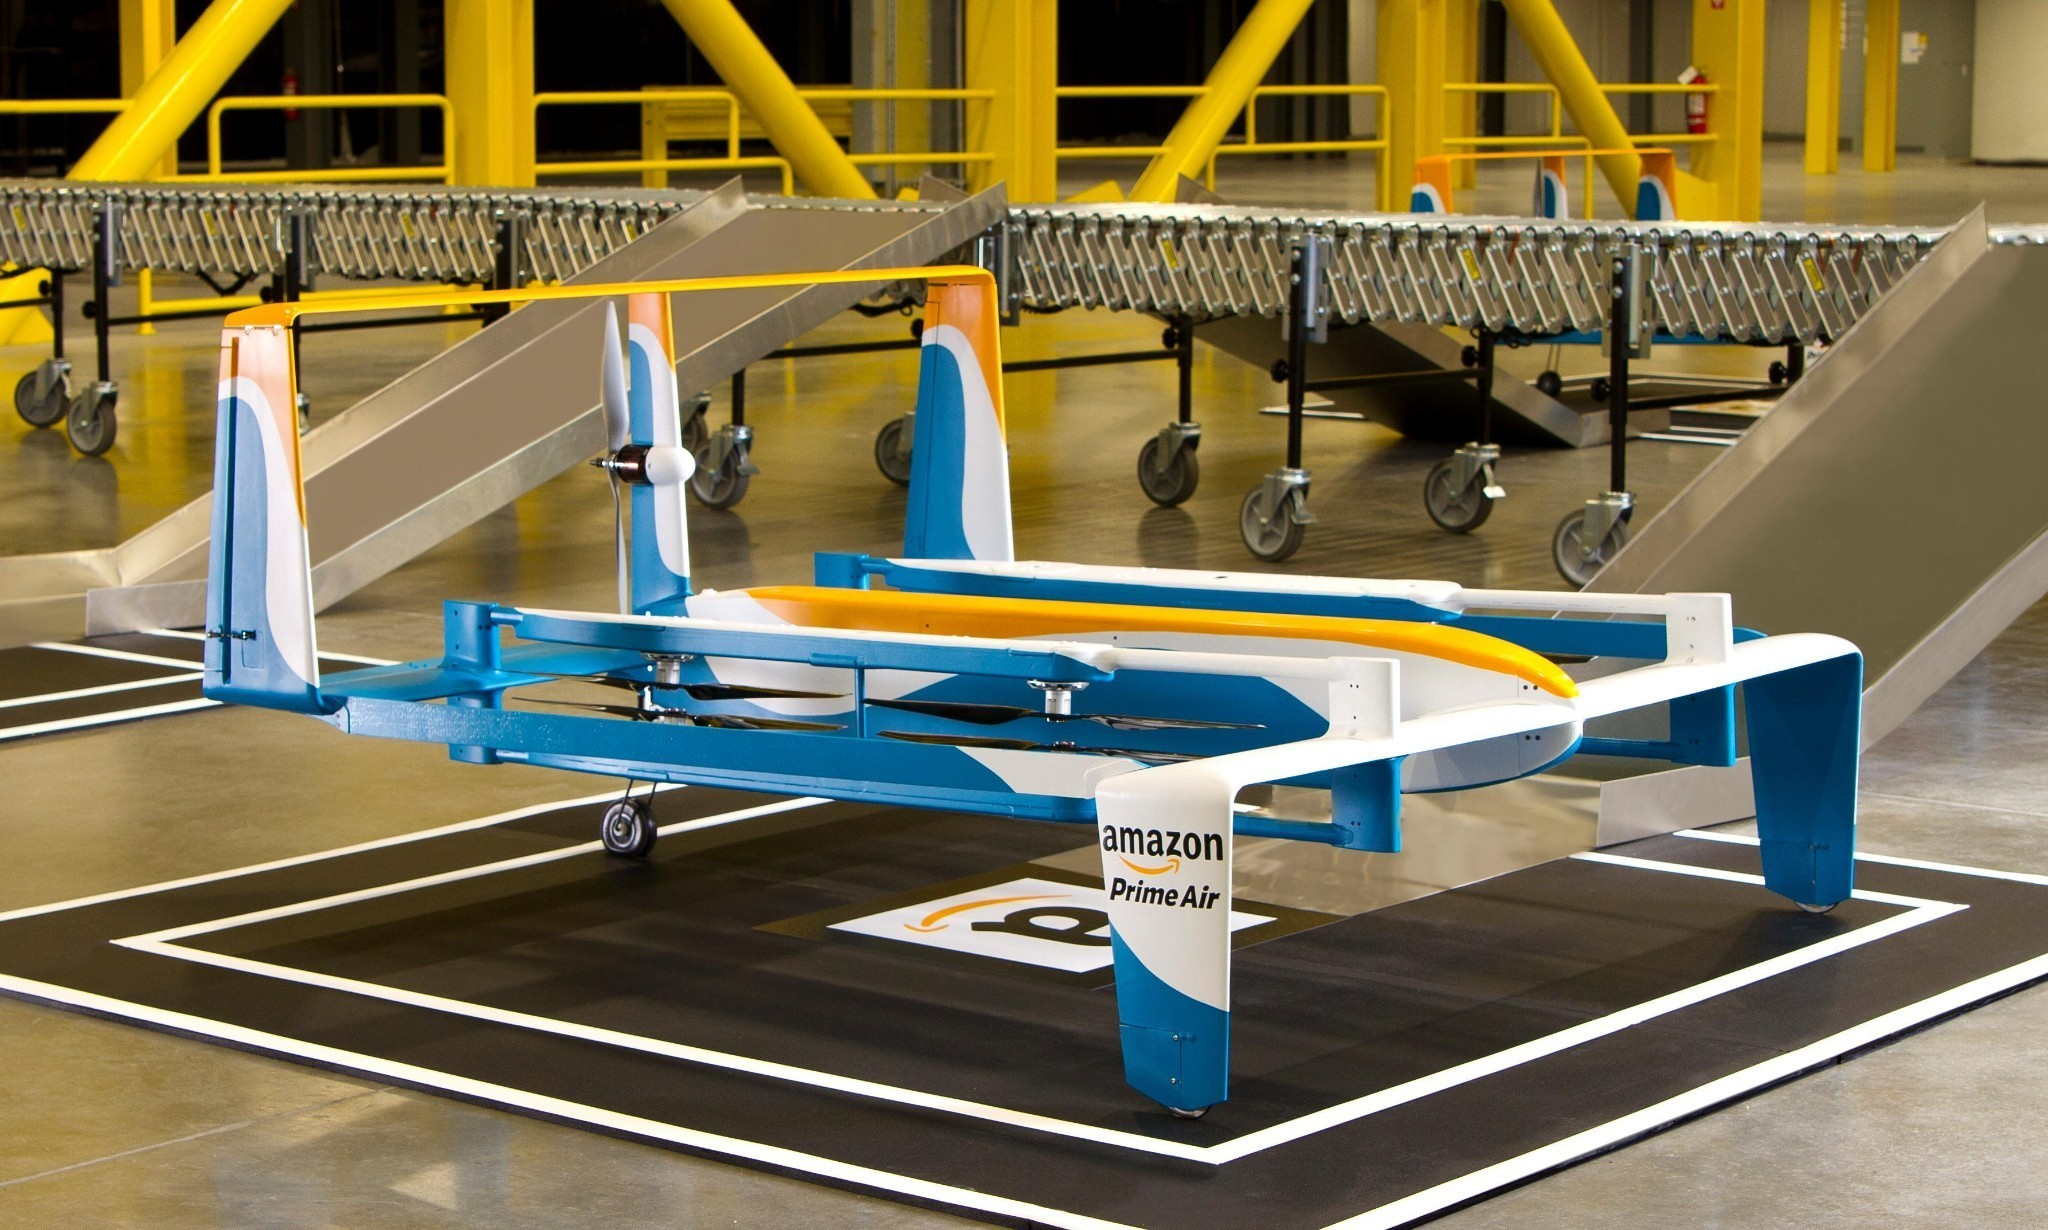 Amazon unveils hybrid drone prototype to make deliveries within 30 minutes